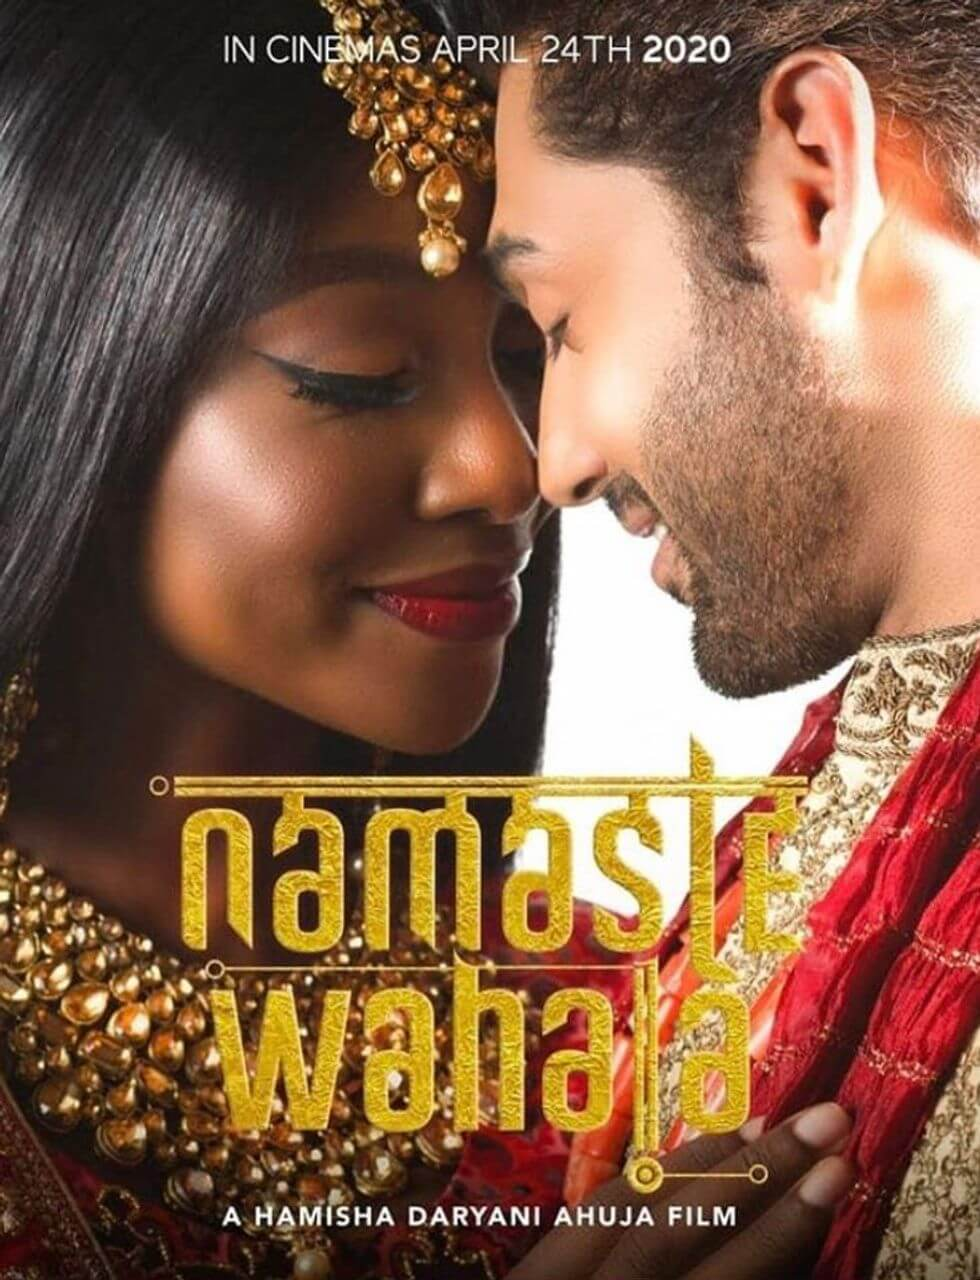 NAMASTE WAHALA is the first collaboration between Nollywood and Bollywood